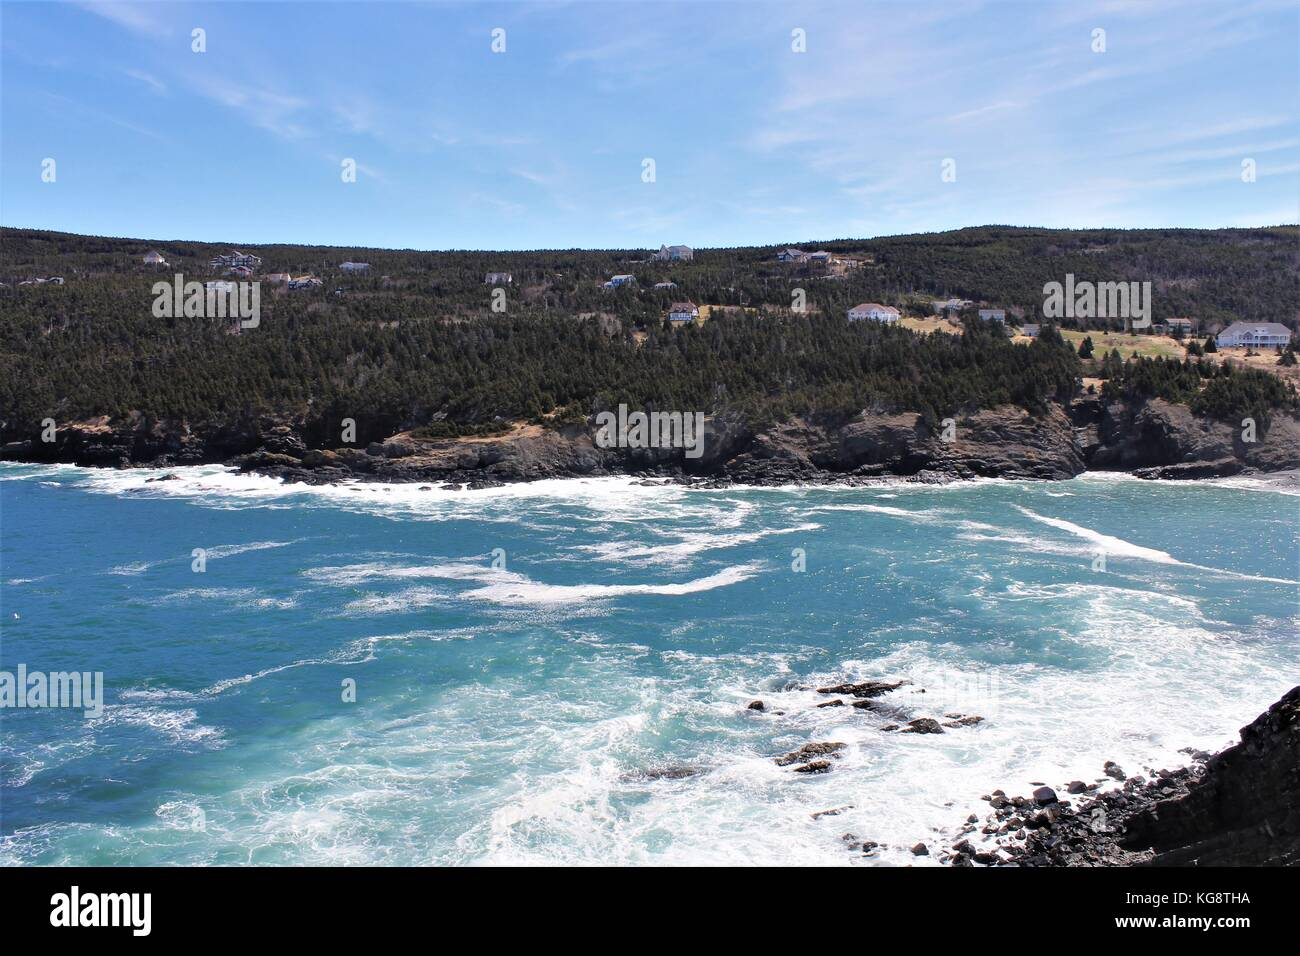 Waves breaking against the rocky cliffs and rugged coastline, Logy Bay-Middle Cove-Outer Cove, Newfoundland Labrador - Stock Image